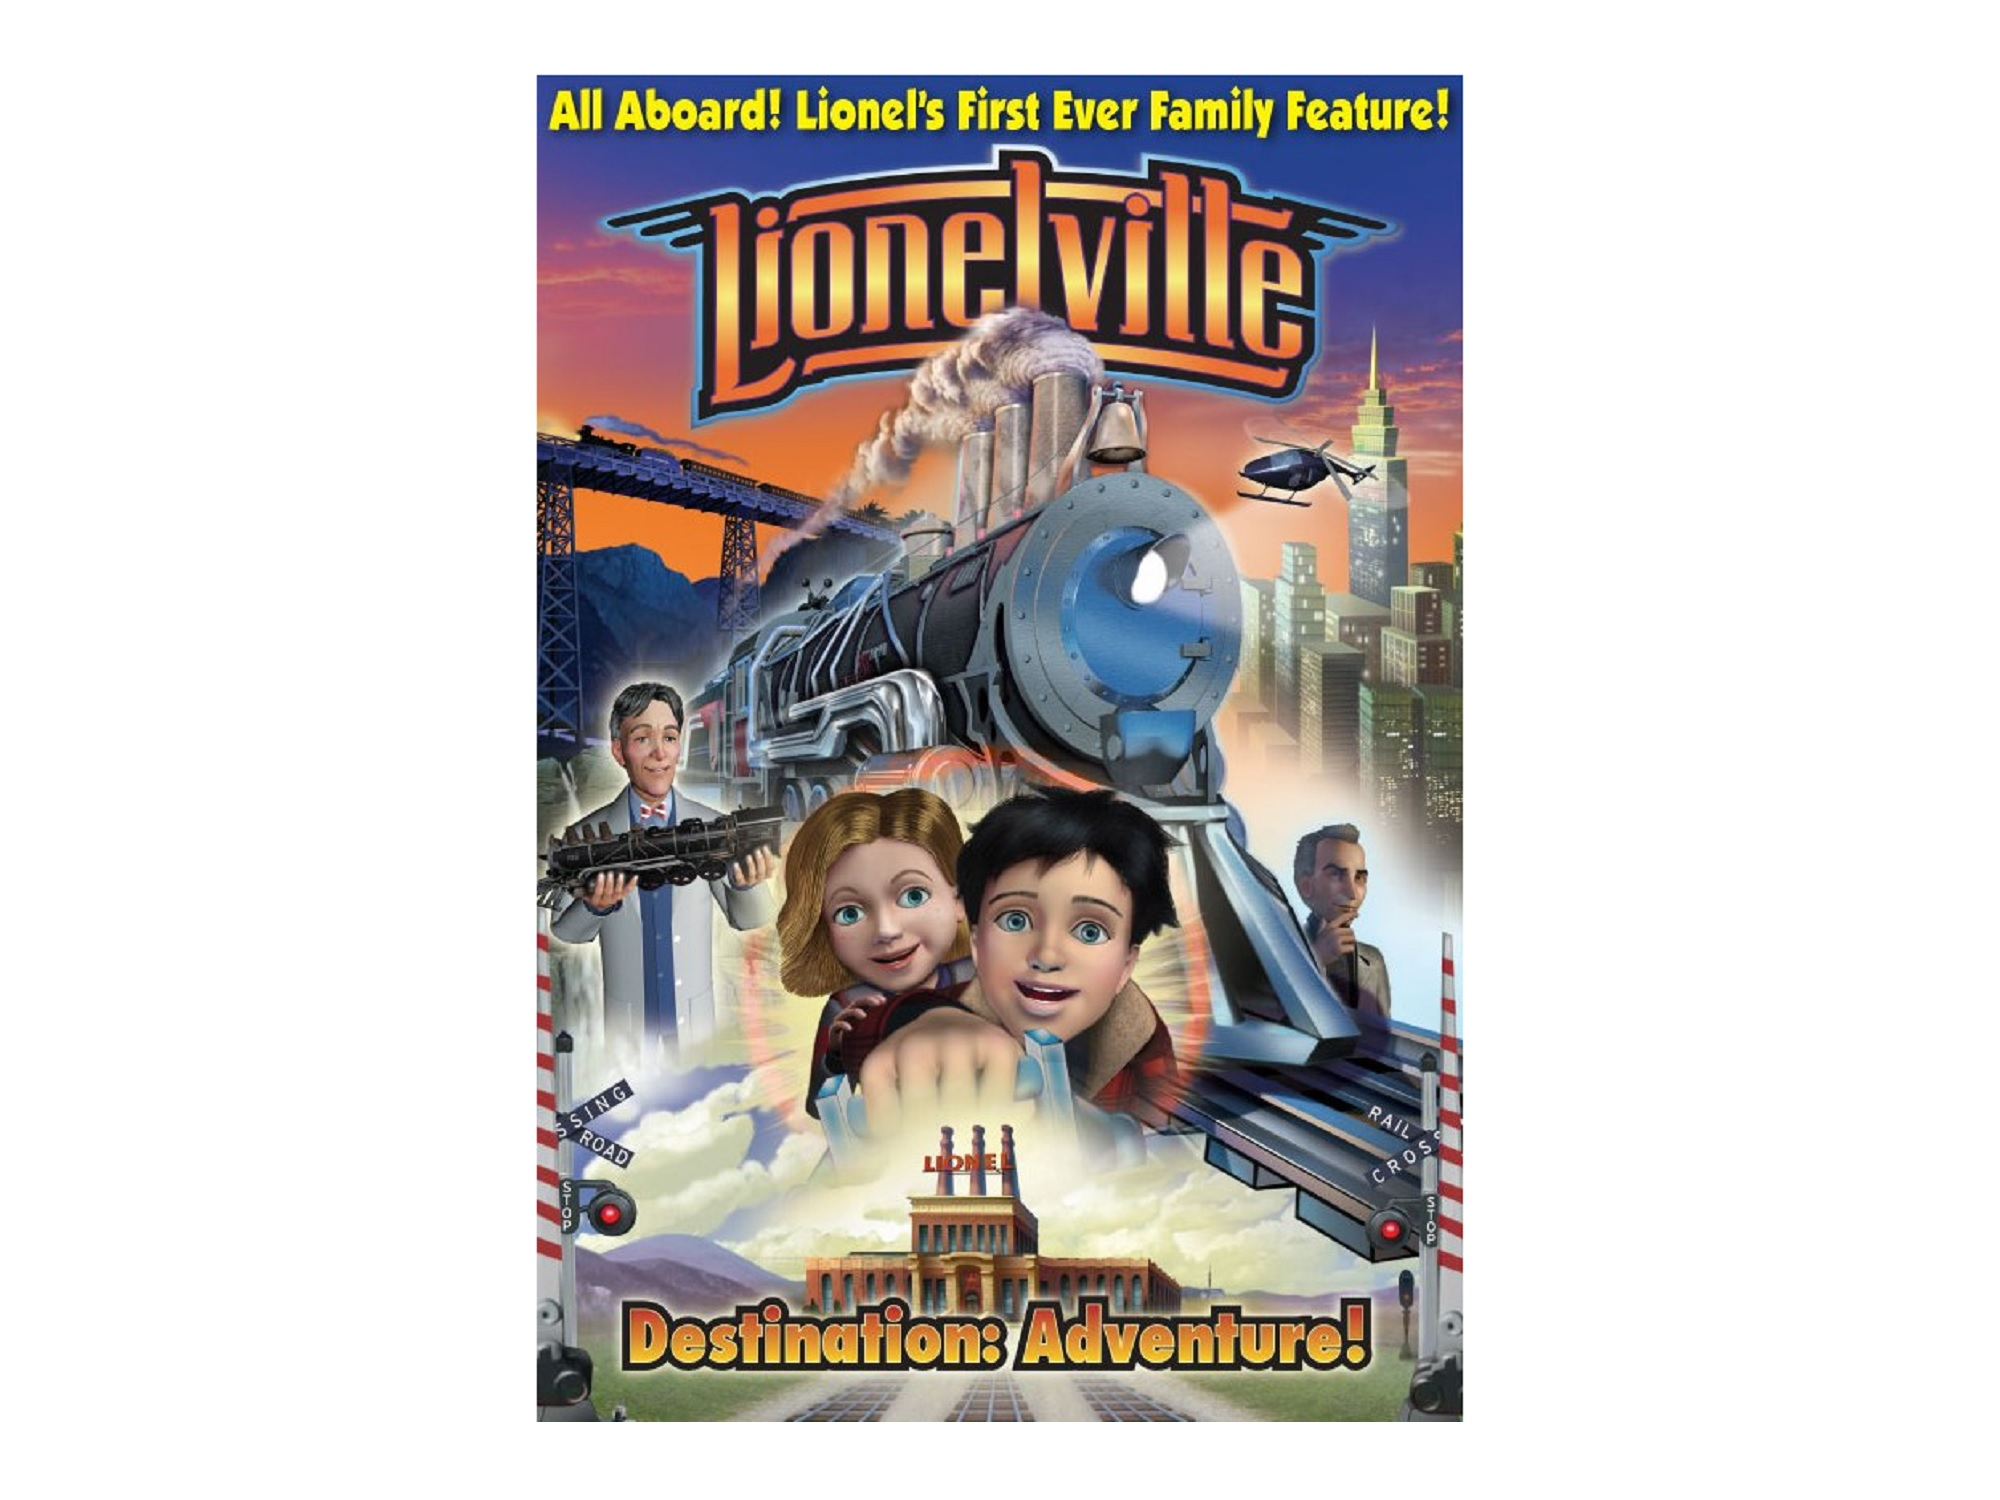 6-35526 LIONELVILLE DESTINATION: ADVENTURE! DVD